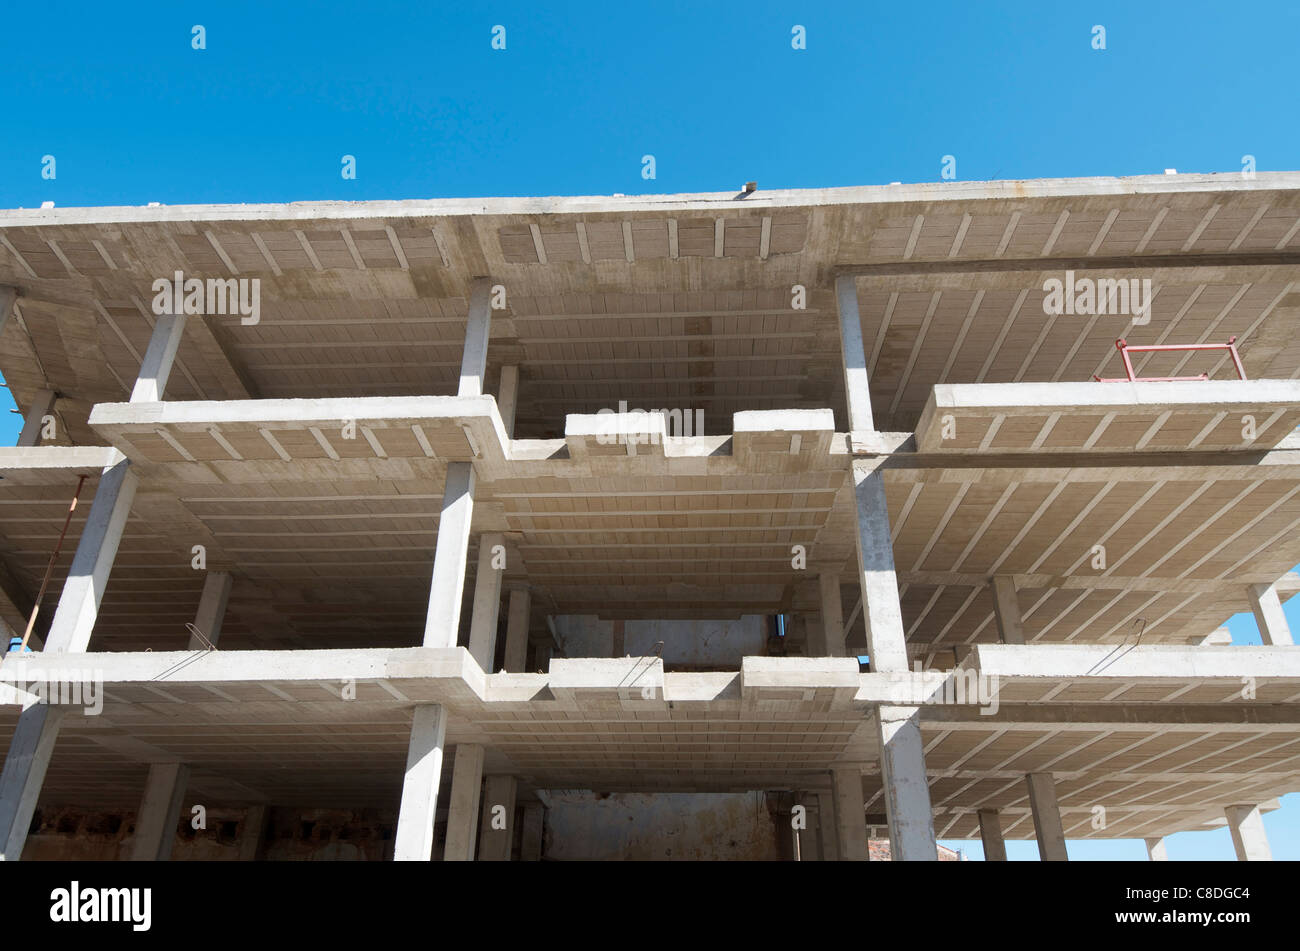 Reinforced Concrete Slab : Reinforced concrete slabs of a residential building under